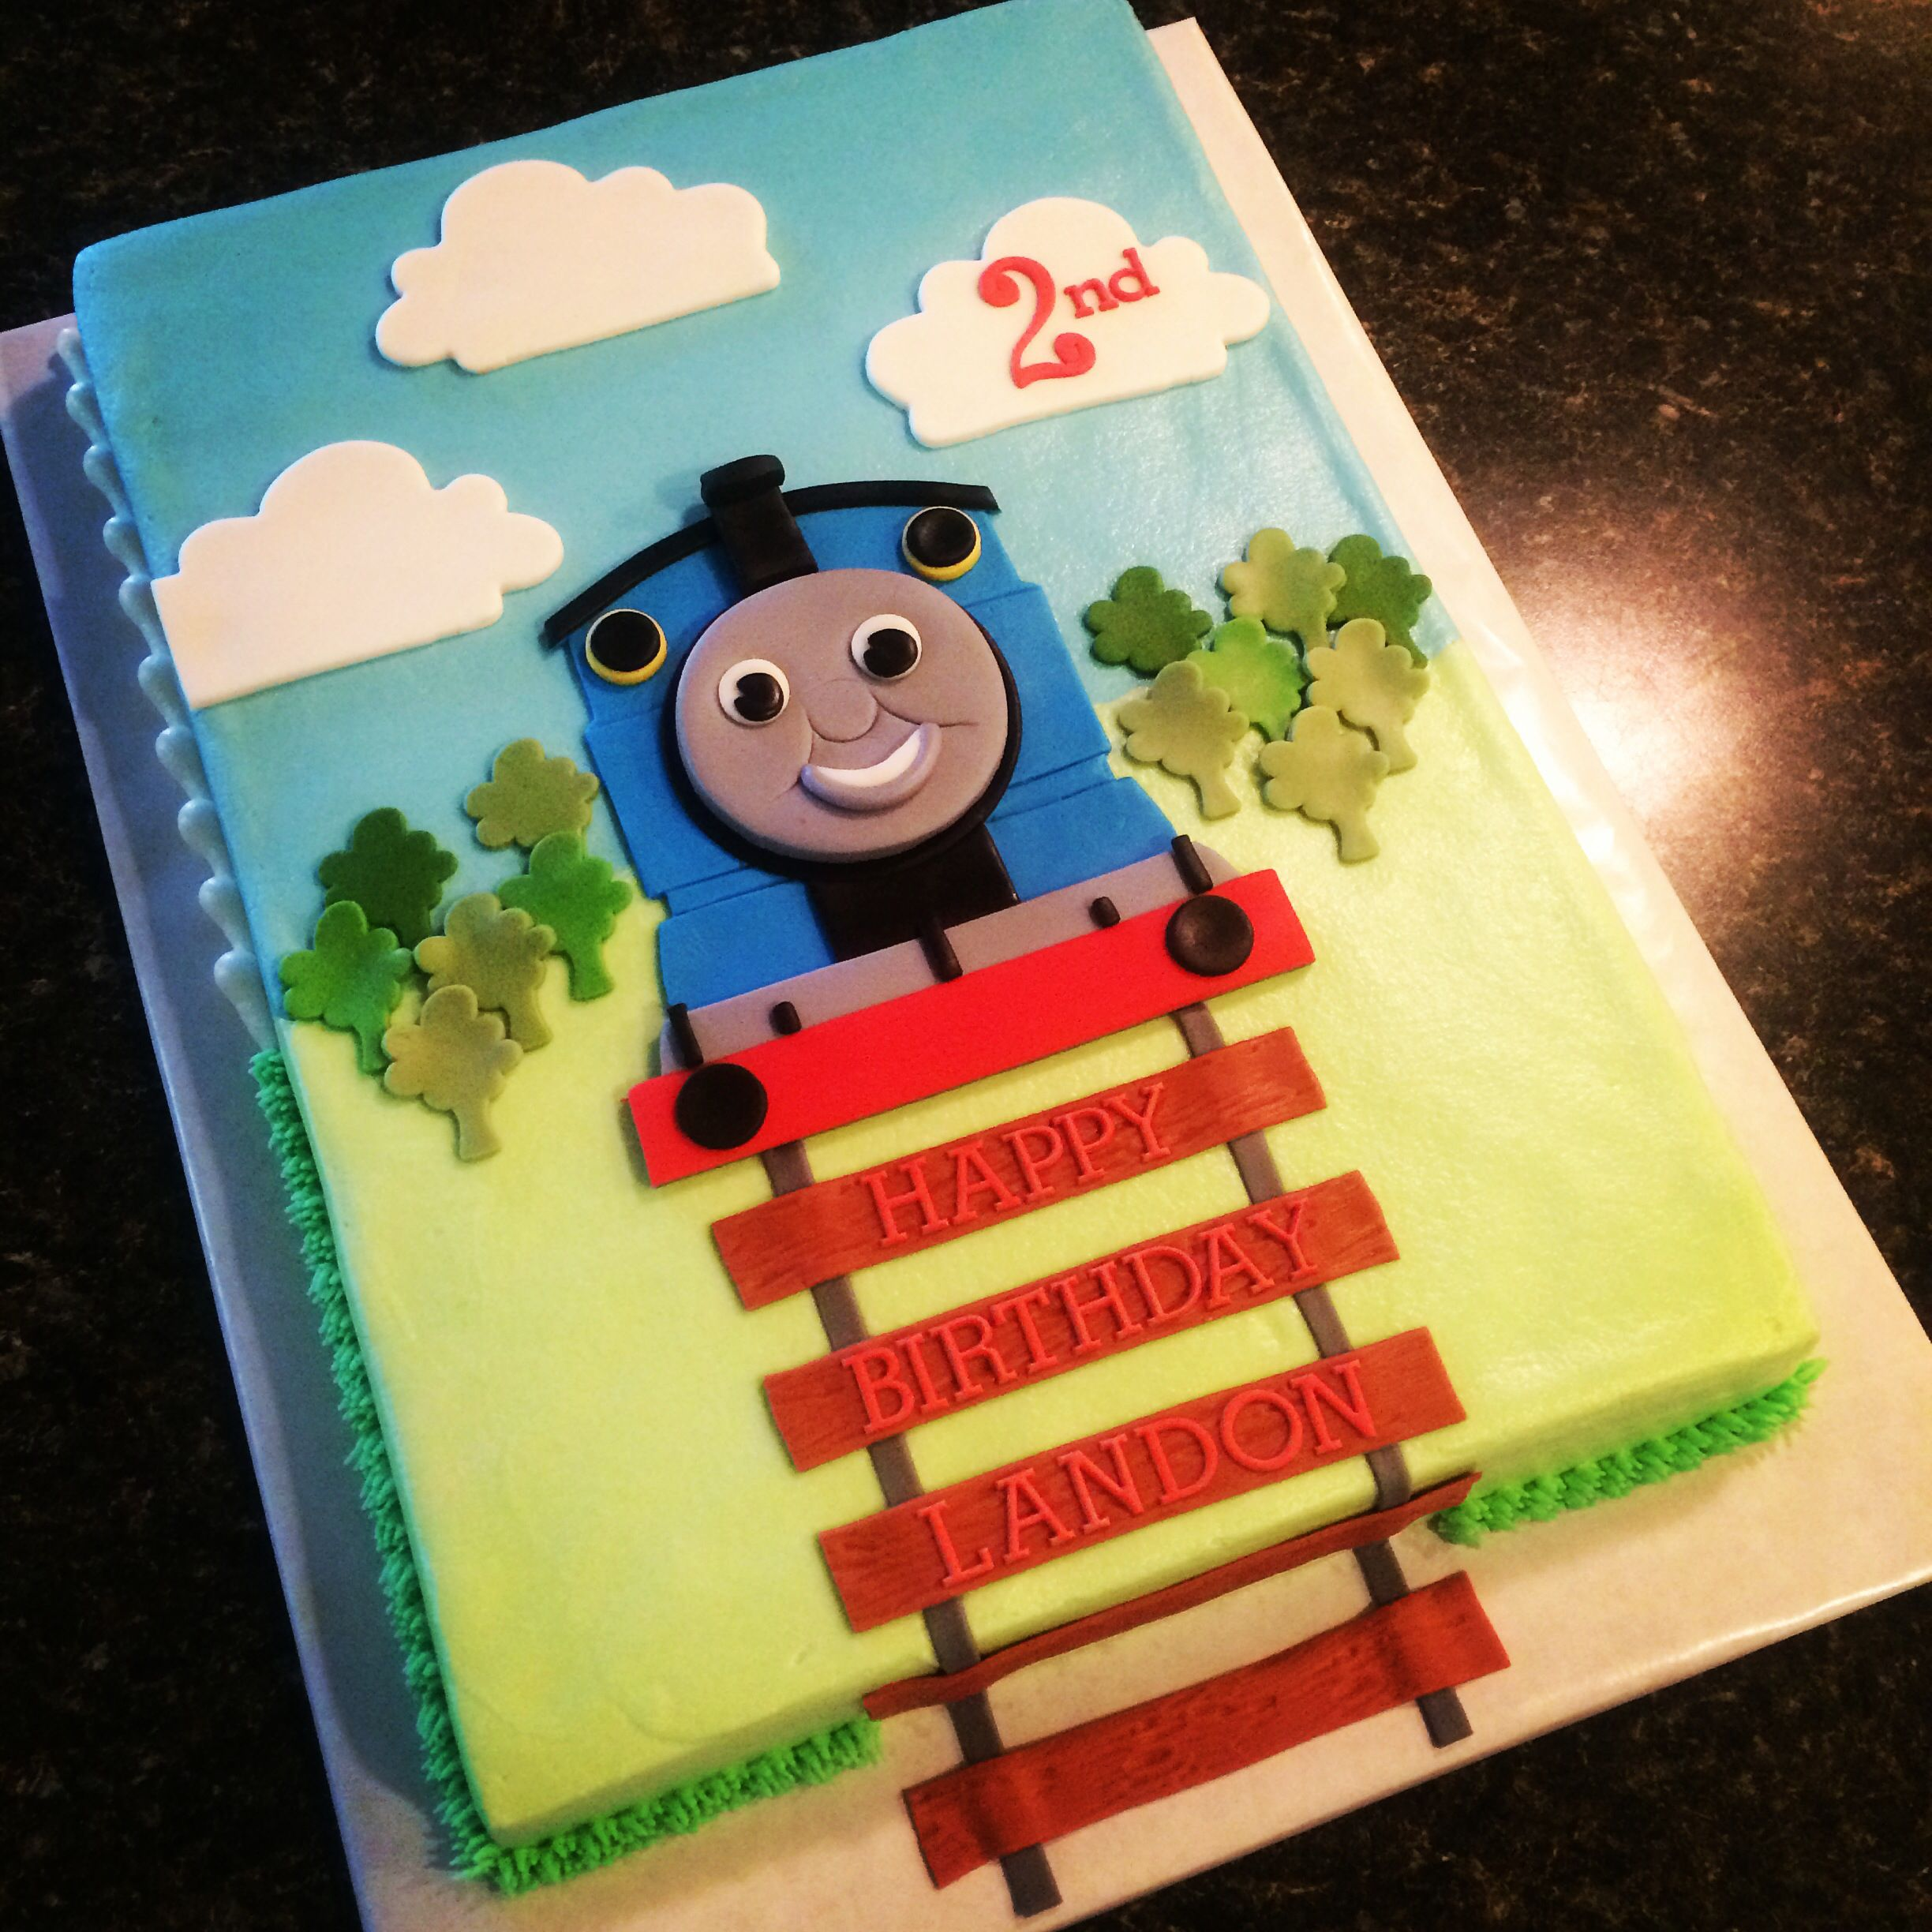 Kuchen Lokomotive Thomas The Train Sheet Cake Backen And Verzieren Kuchen